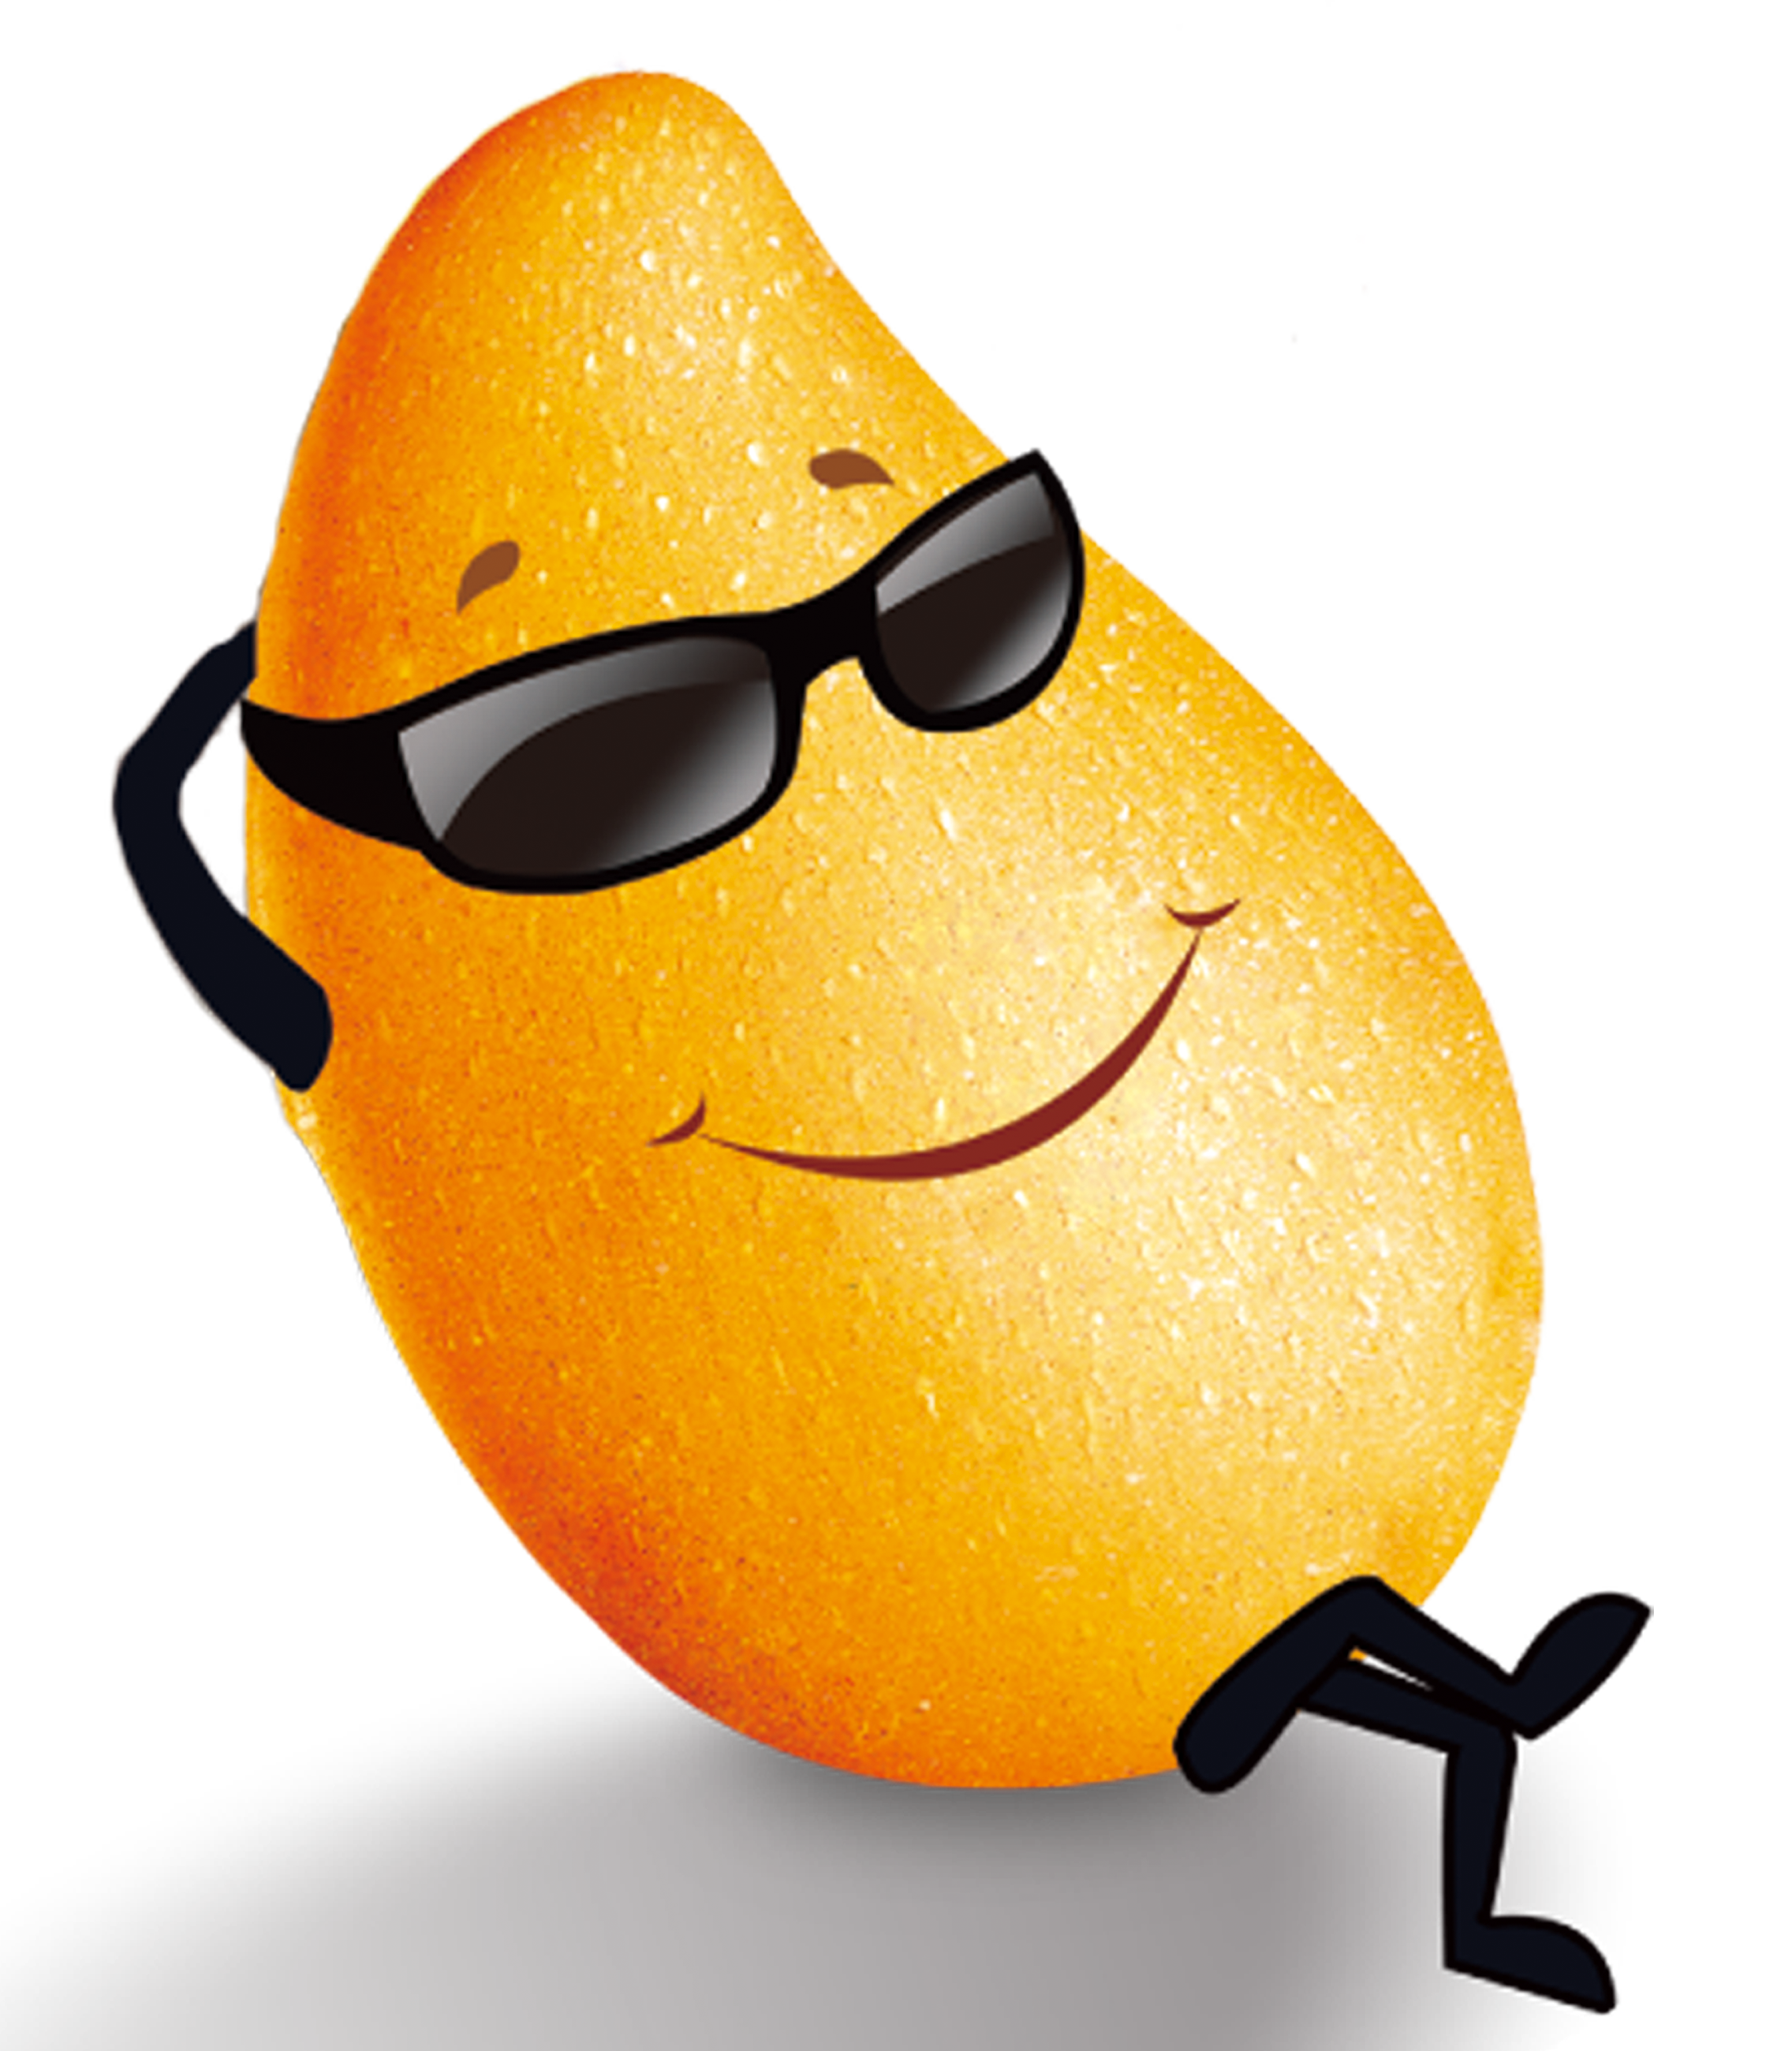 Mango clipart high resolution. Png images transparent free